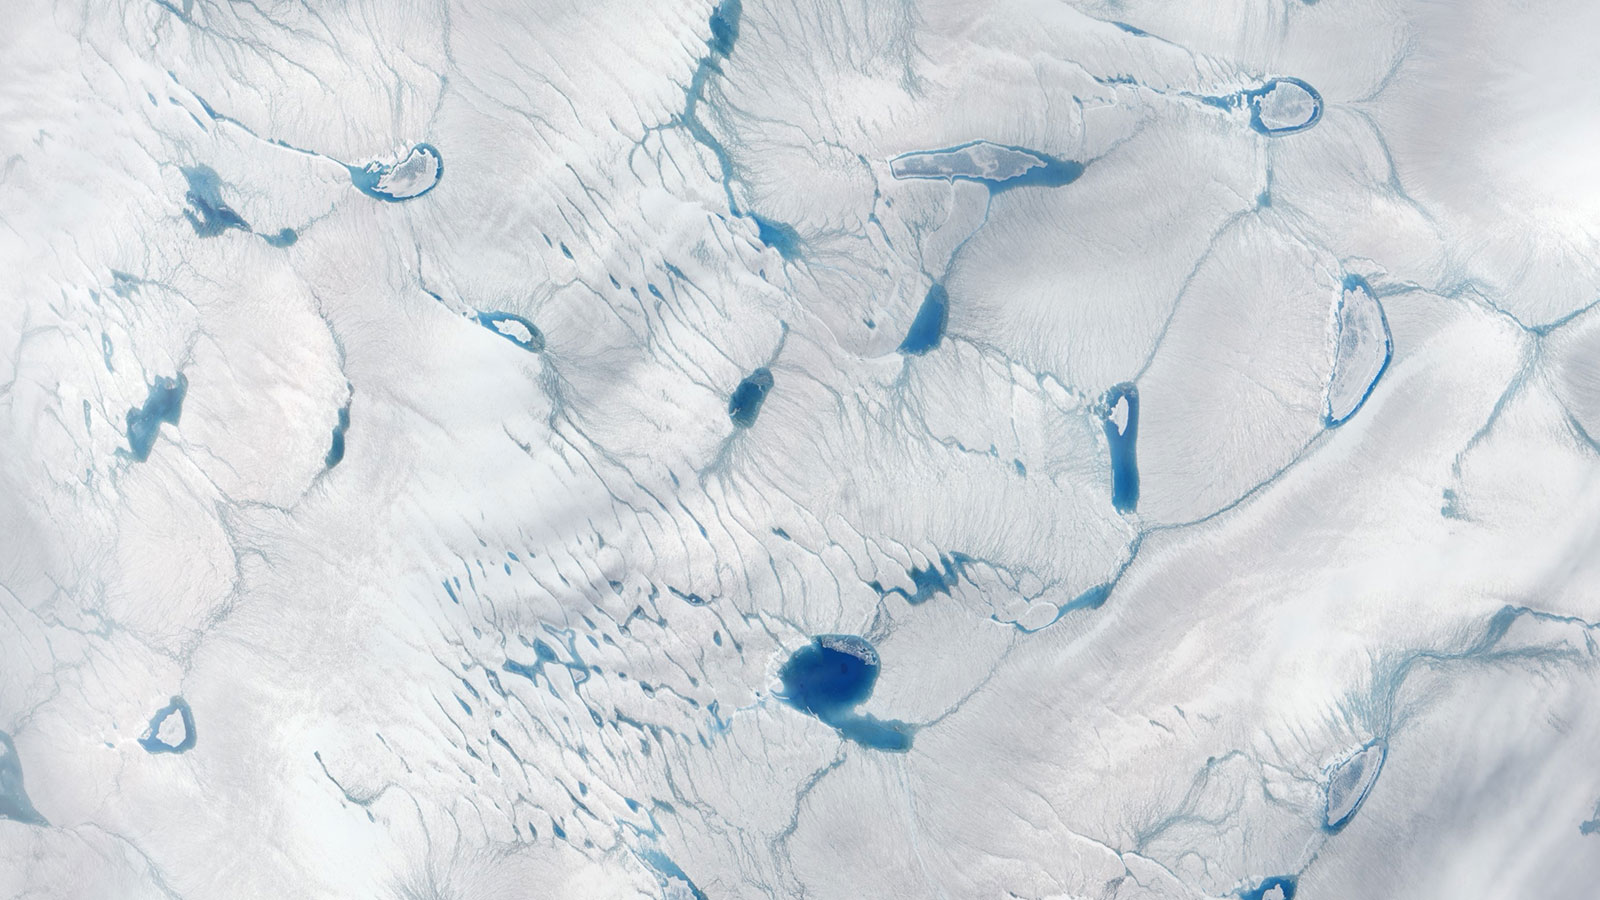 Greenland pools of meltwater